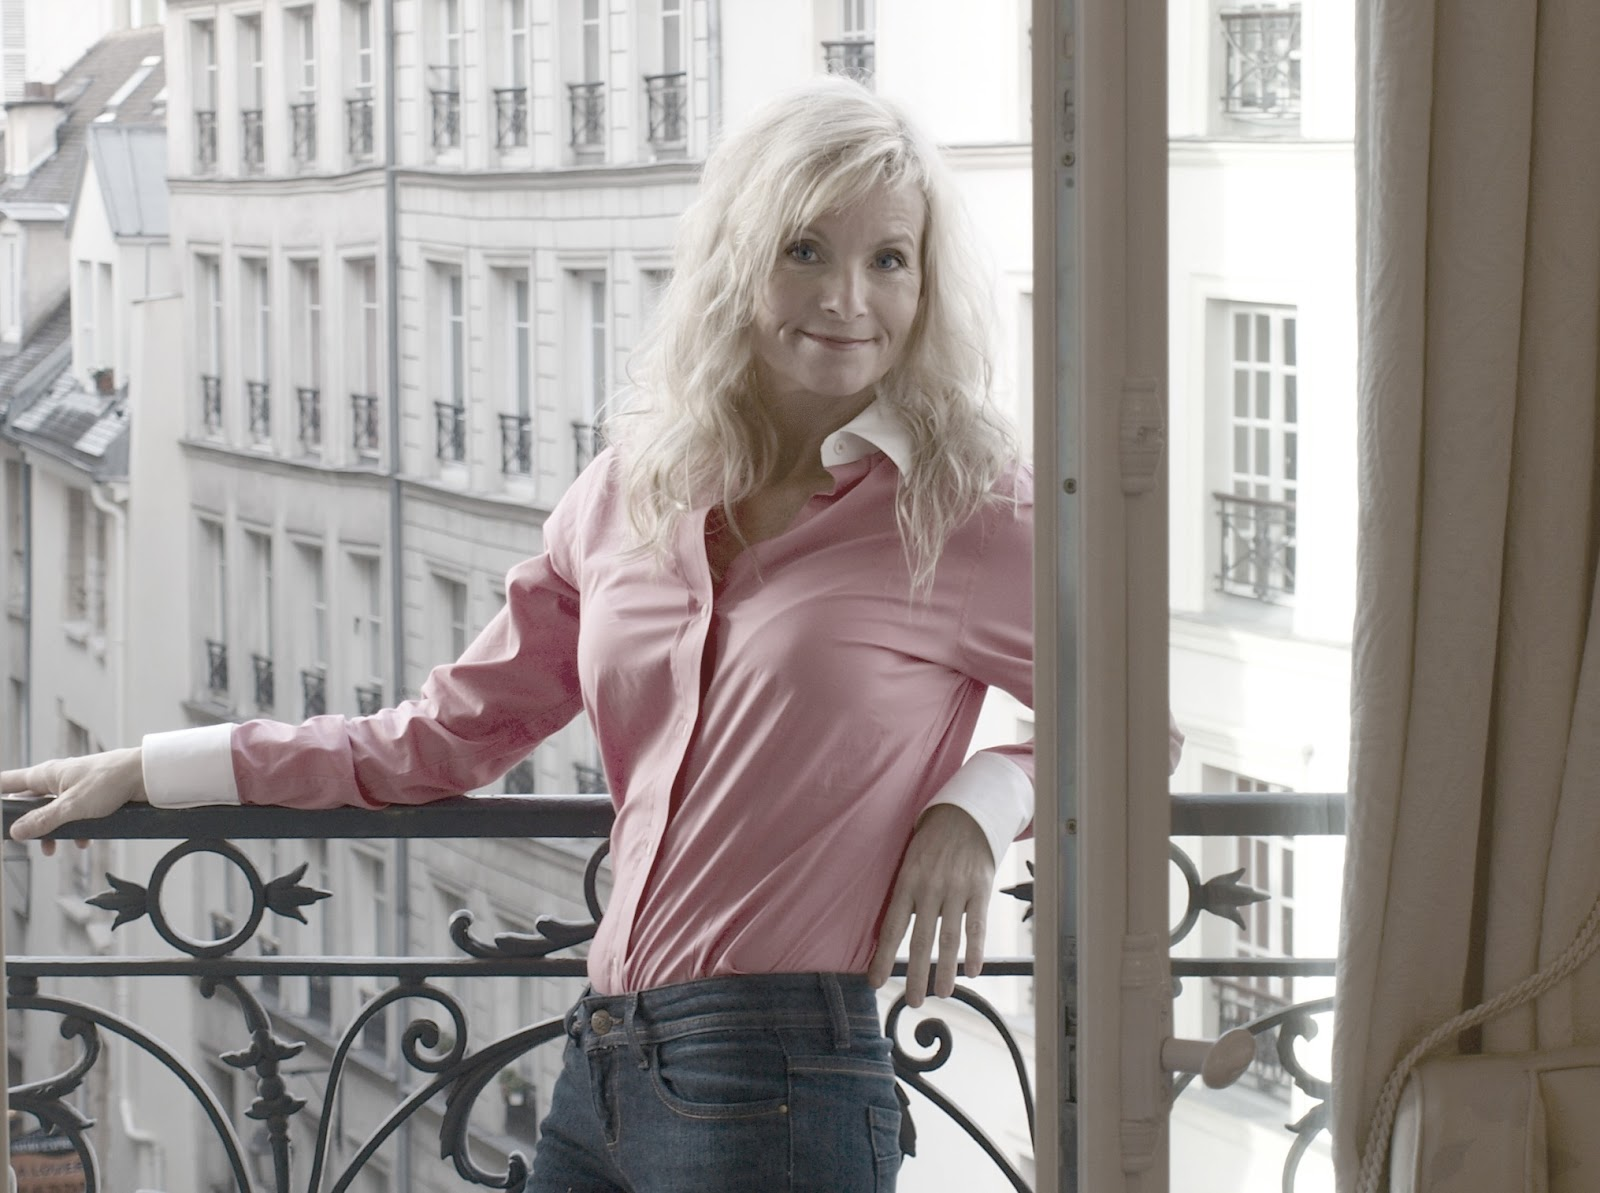 On the balcony of our #parisapartment - Hello Lovely Studio